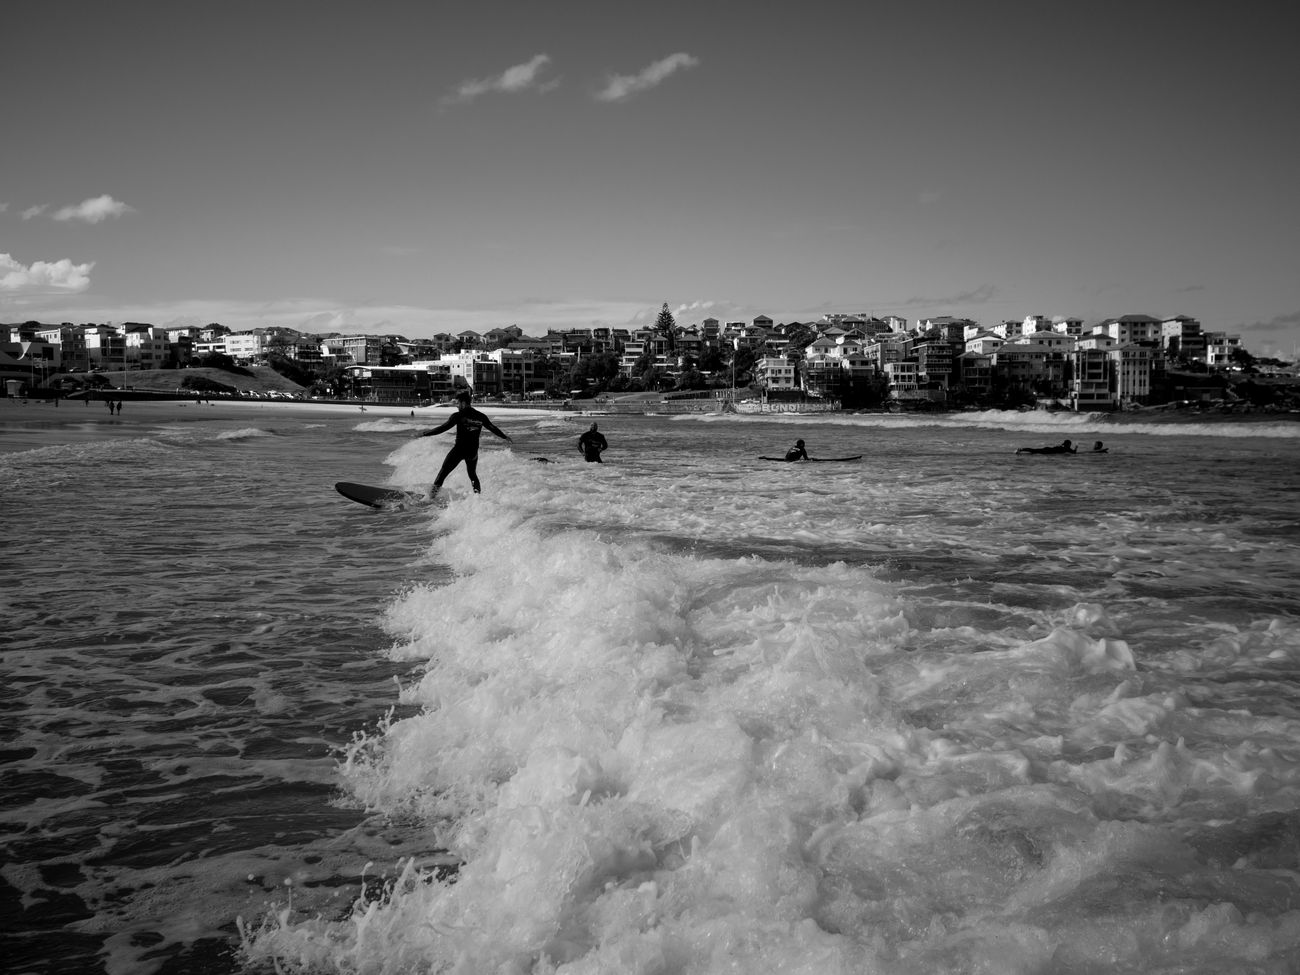 Bondi Beach. Beach Sky Sand Outdoors Sea Sport People Real People Live For The Story Lifestyles Black And White Photography Black And White Monochrome Photography Sydney Maxgor.com Maxgor Rawstreets Leica X Vario Leica Bondi Beach